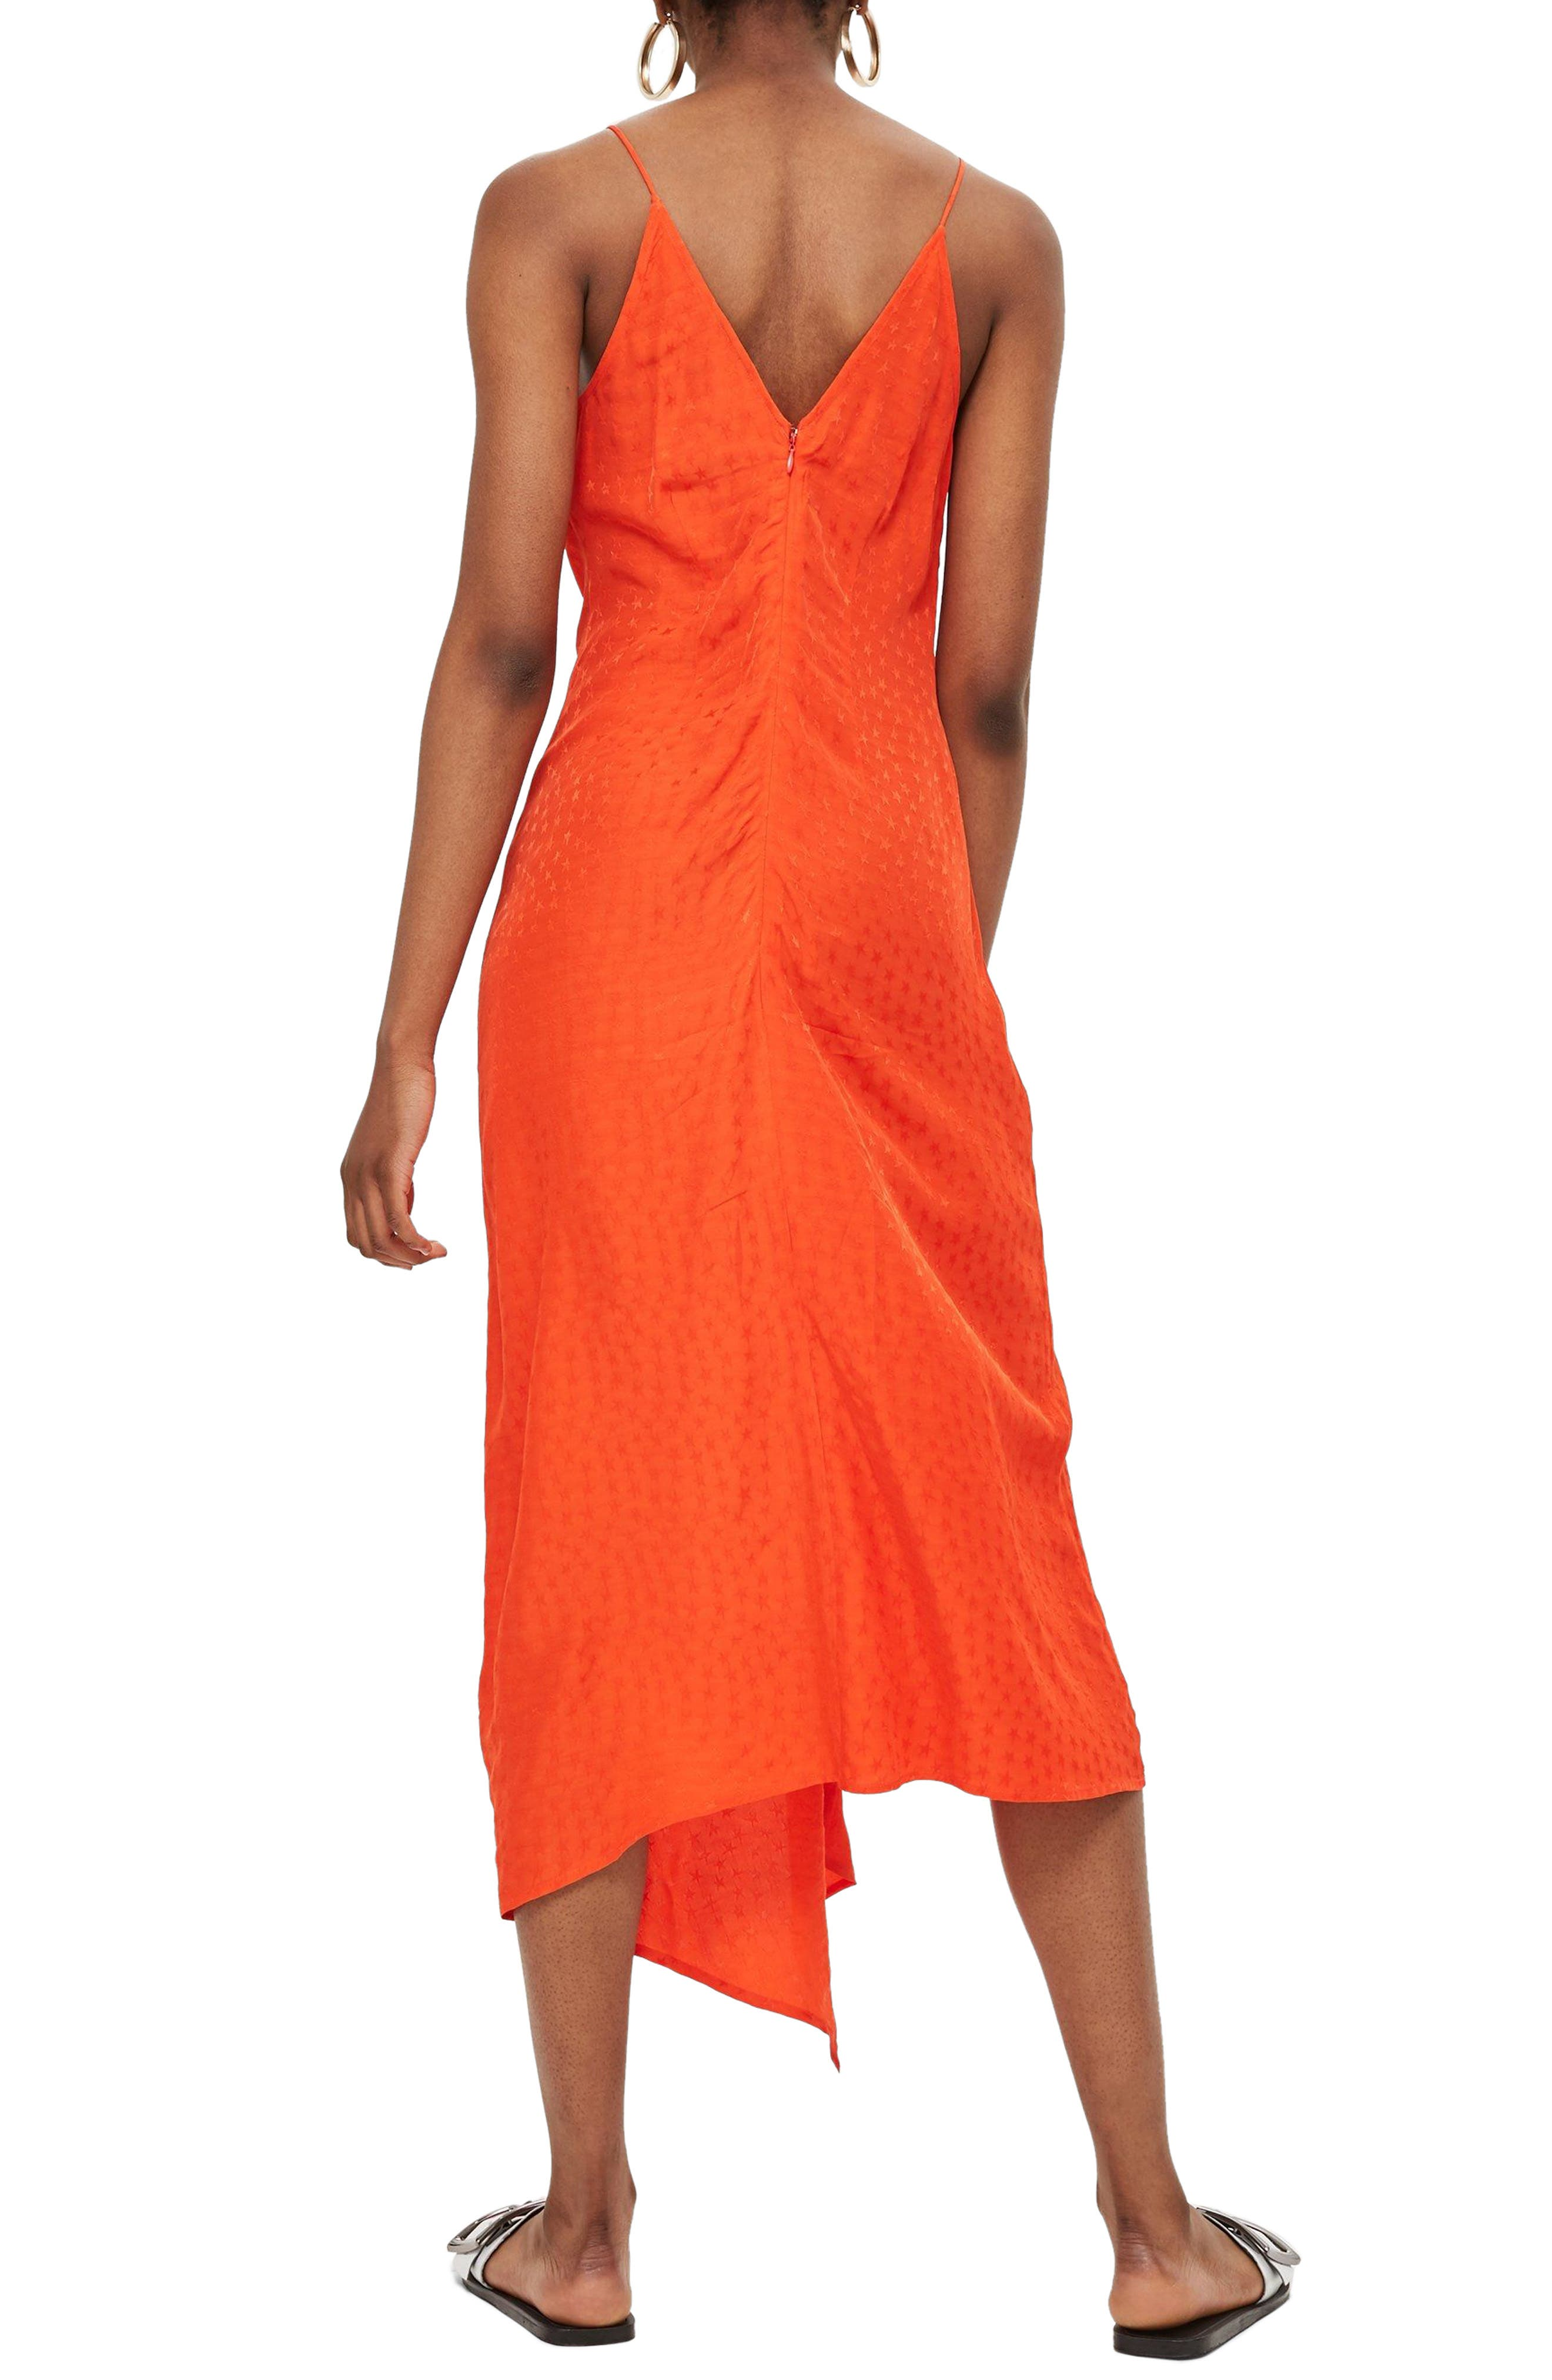 Star Jacquard Ruched Slipdress,                             Alternate thumbnail 2, color,                             600